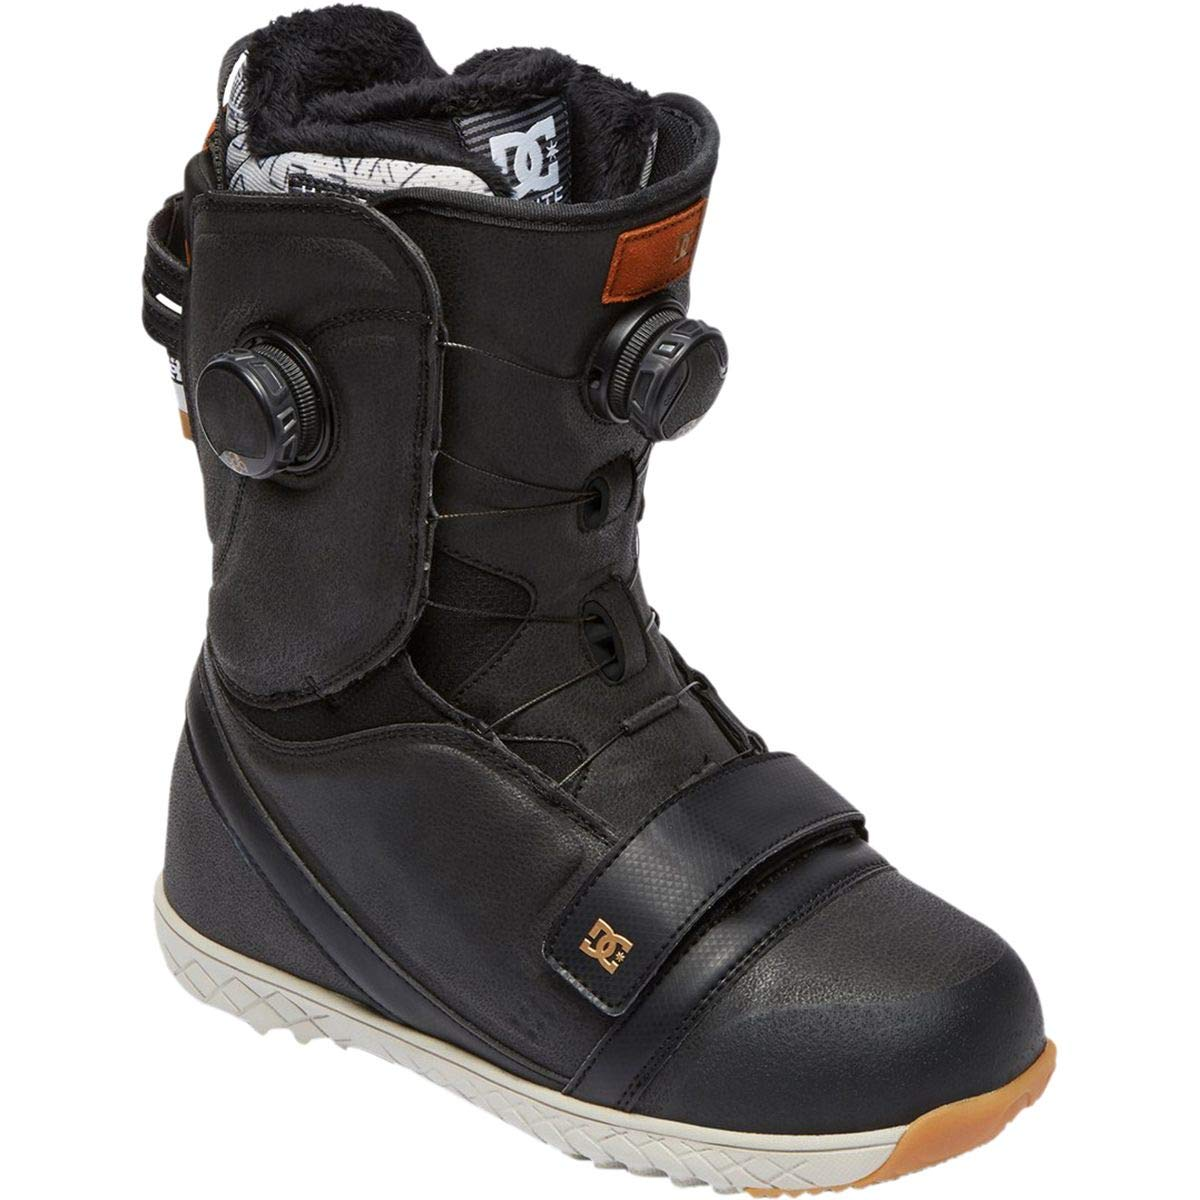 DC Shoes Women's Mora BOA Snowboard Boots Black 8.5 by DC